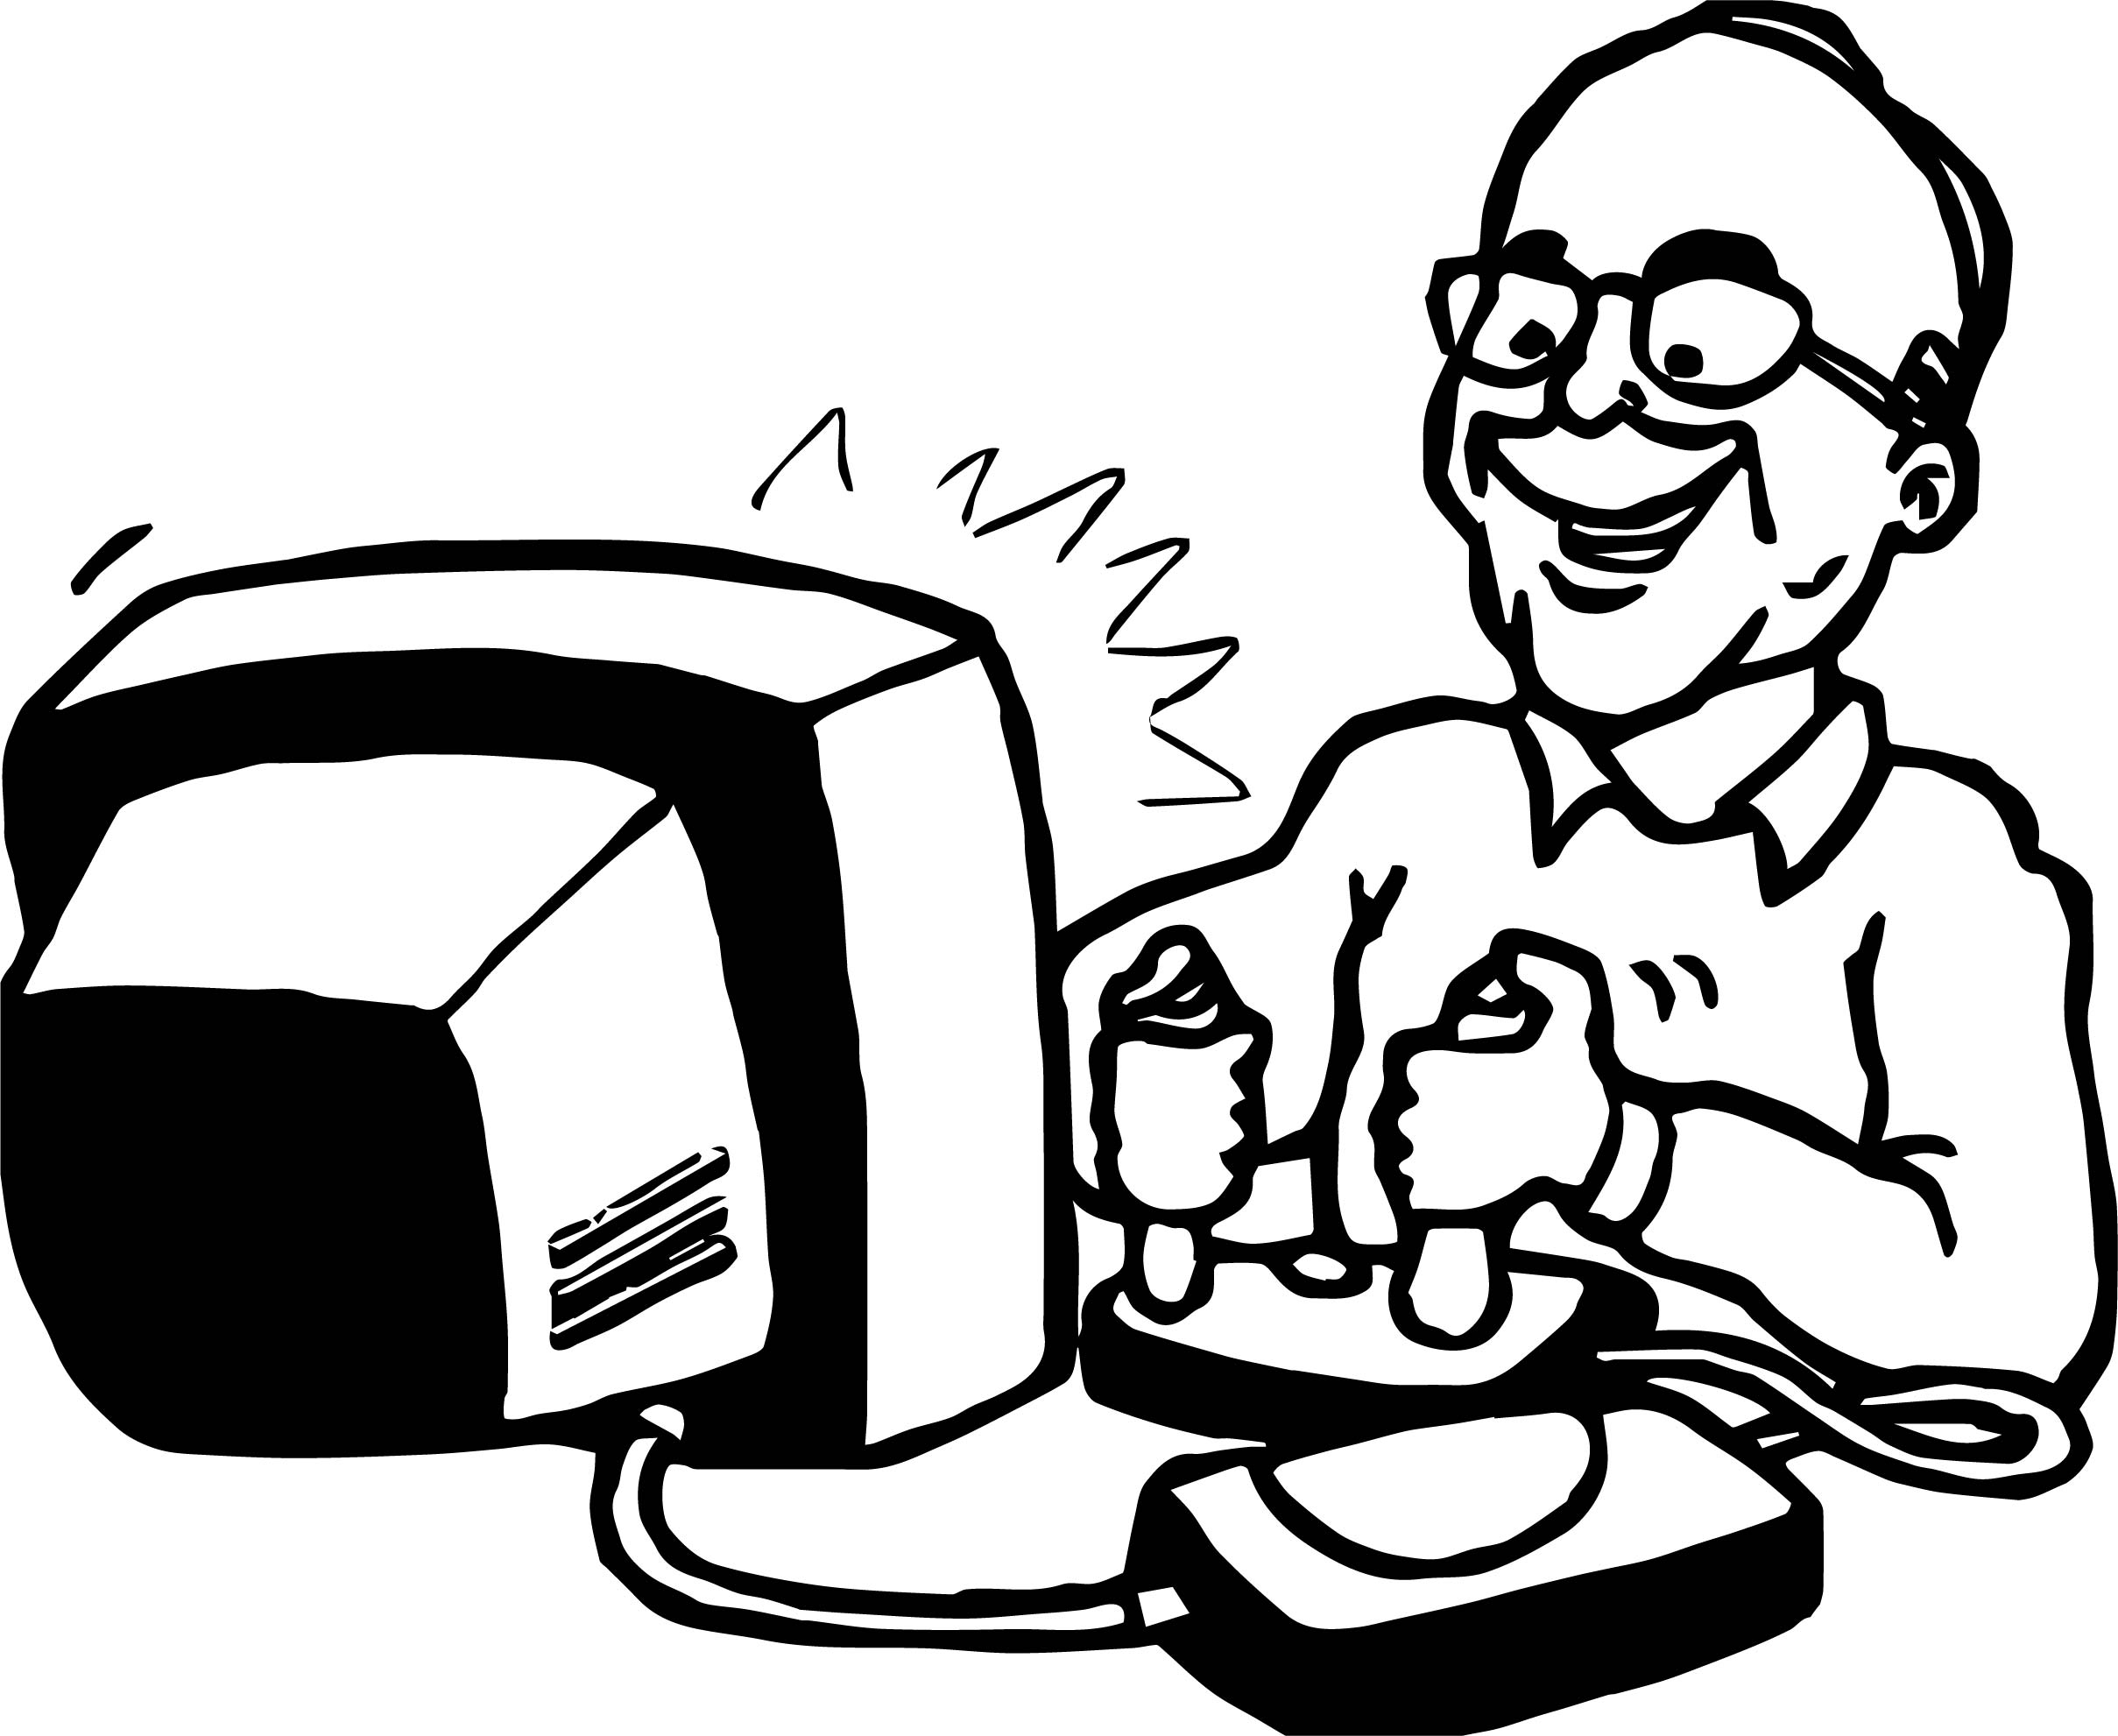 Playing Computer Games Adult Coloring Page